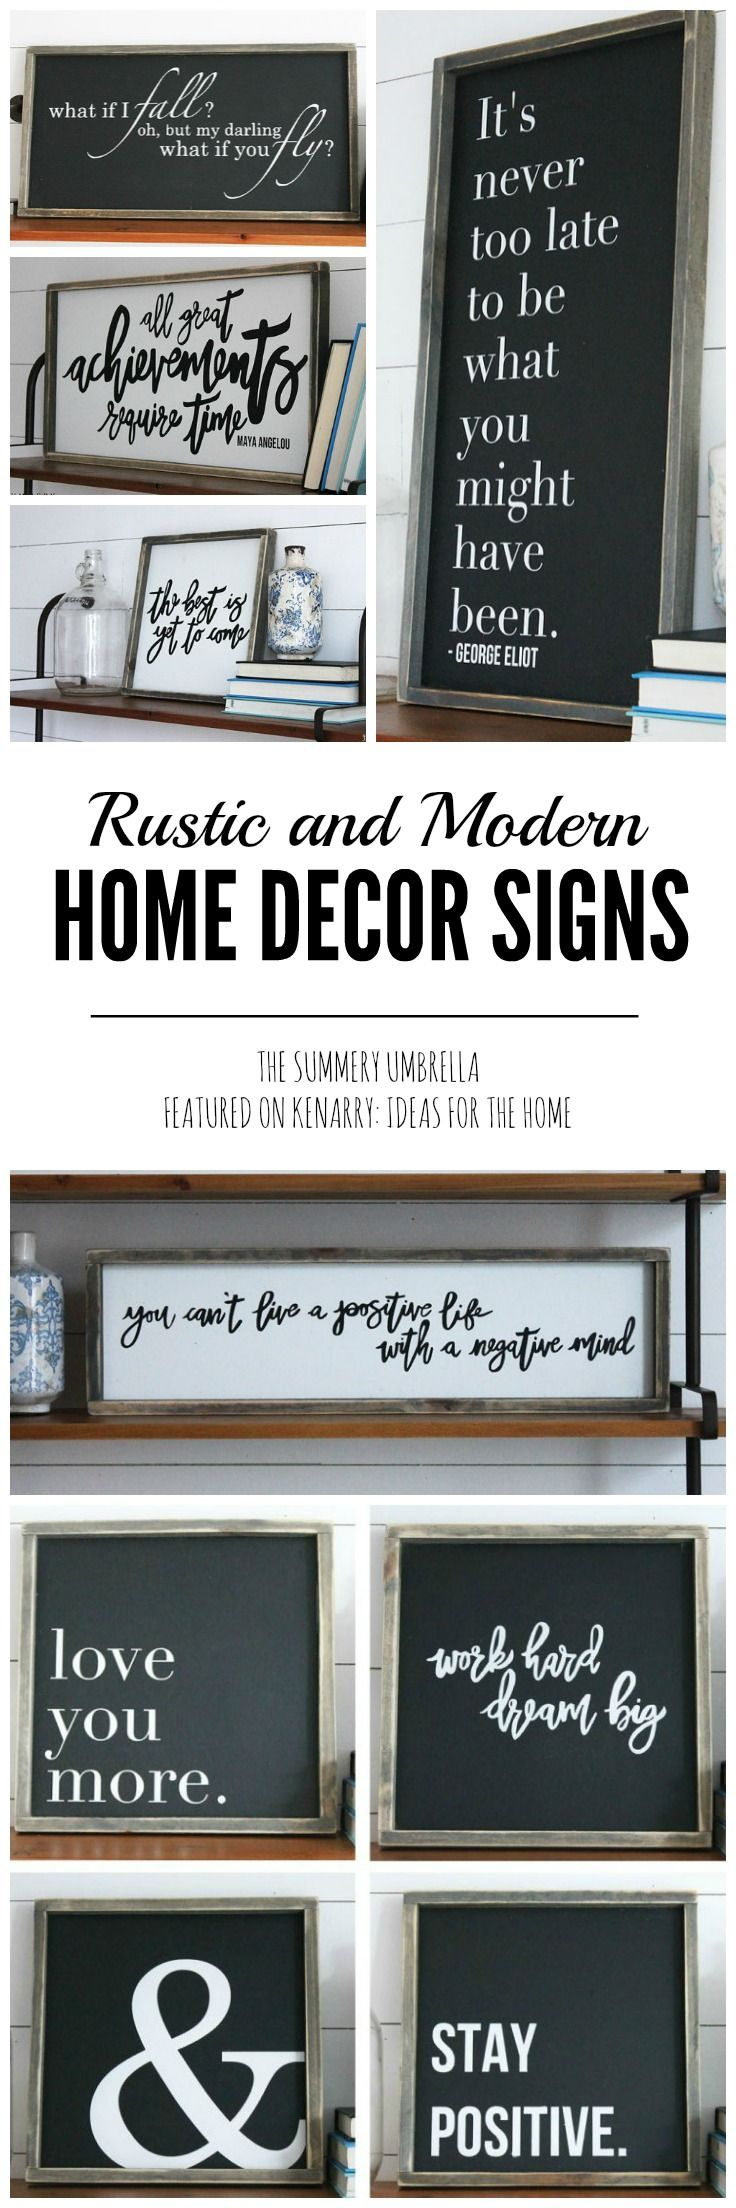 Wall Decor Signs For Home Awesome Best 25 Wall Signs Ideas On Pinterest  Diy Signs Decor For Design Inspiration